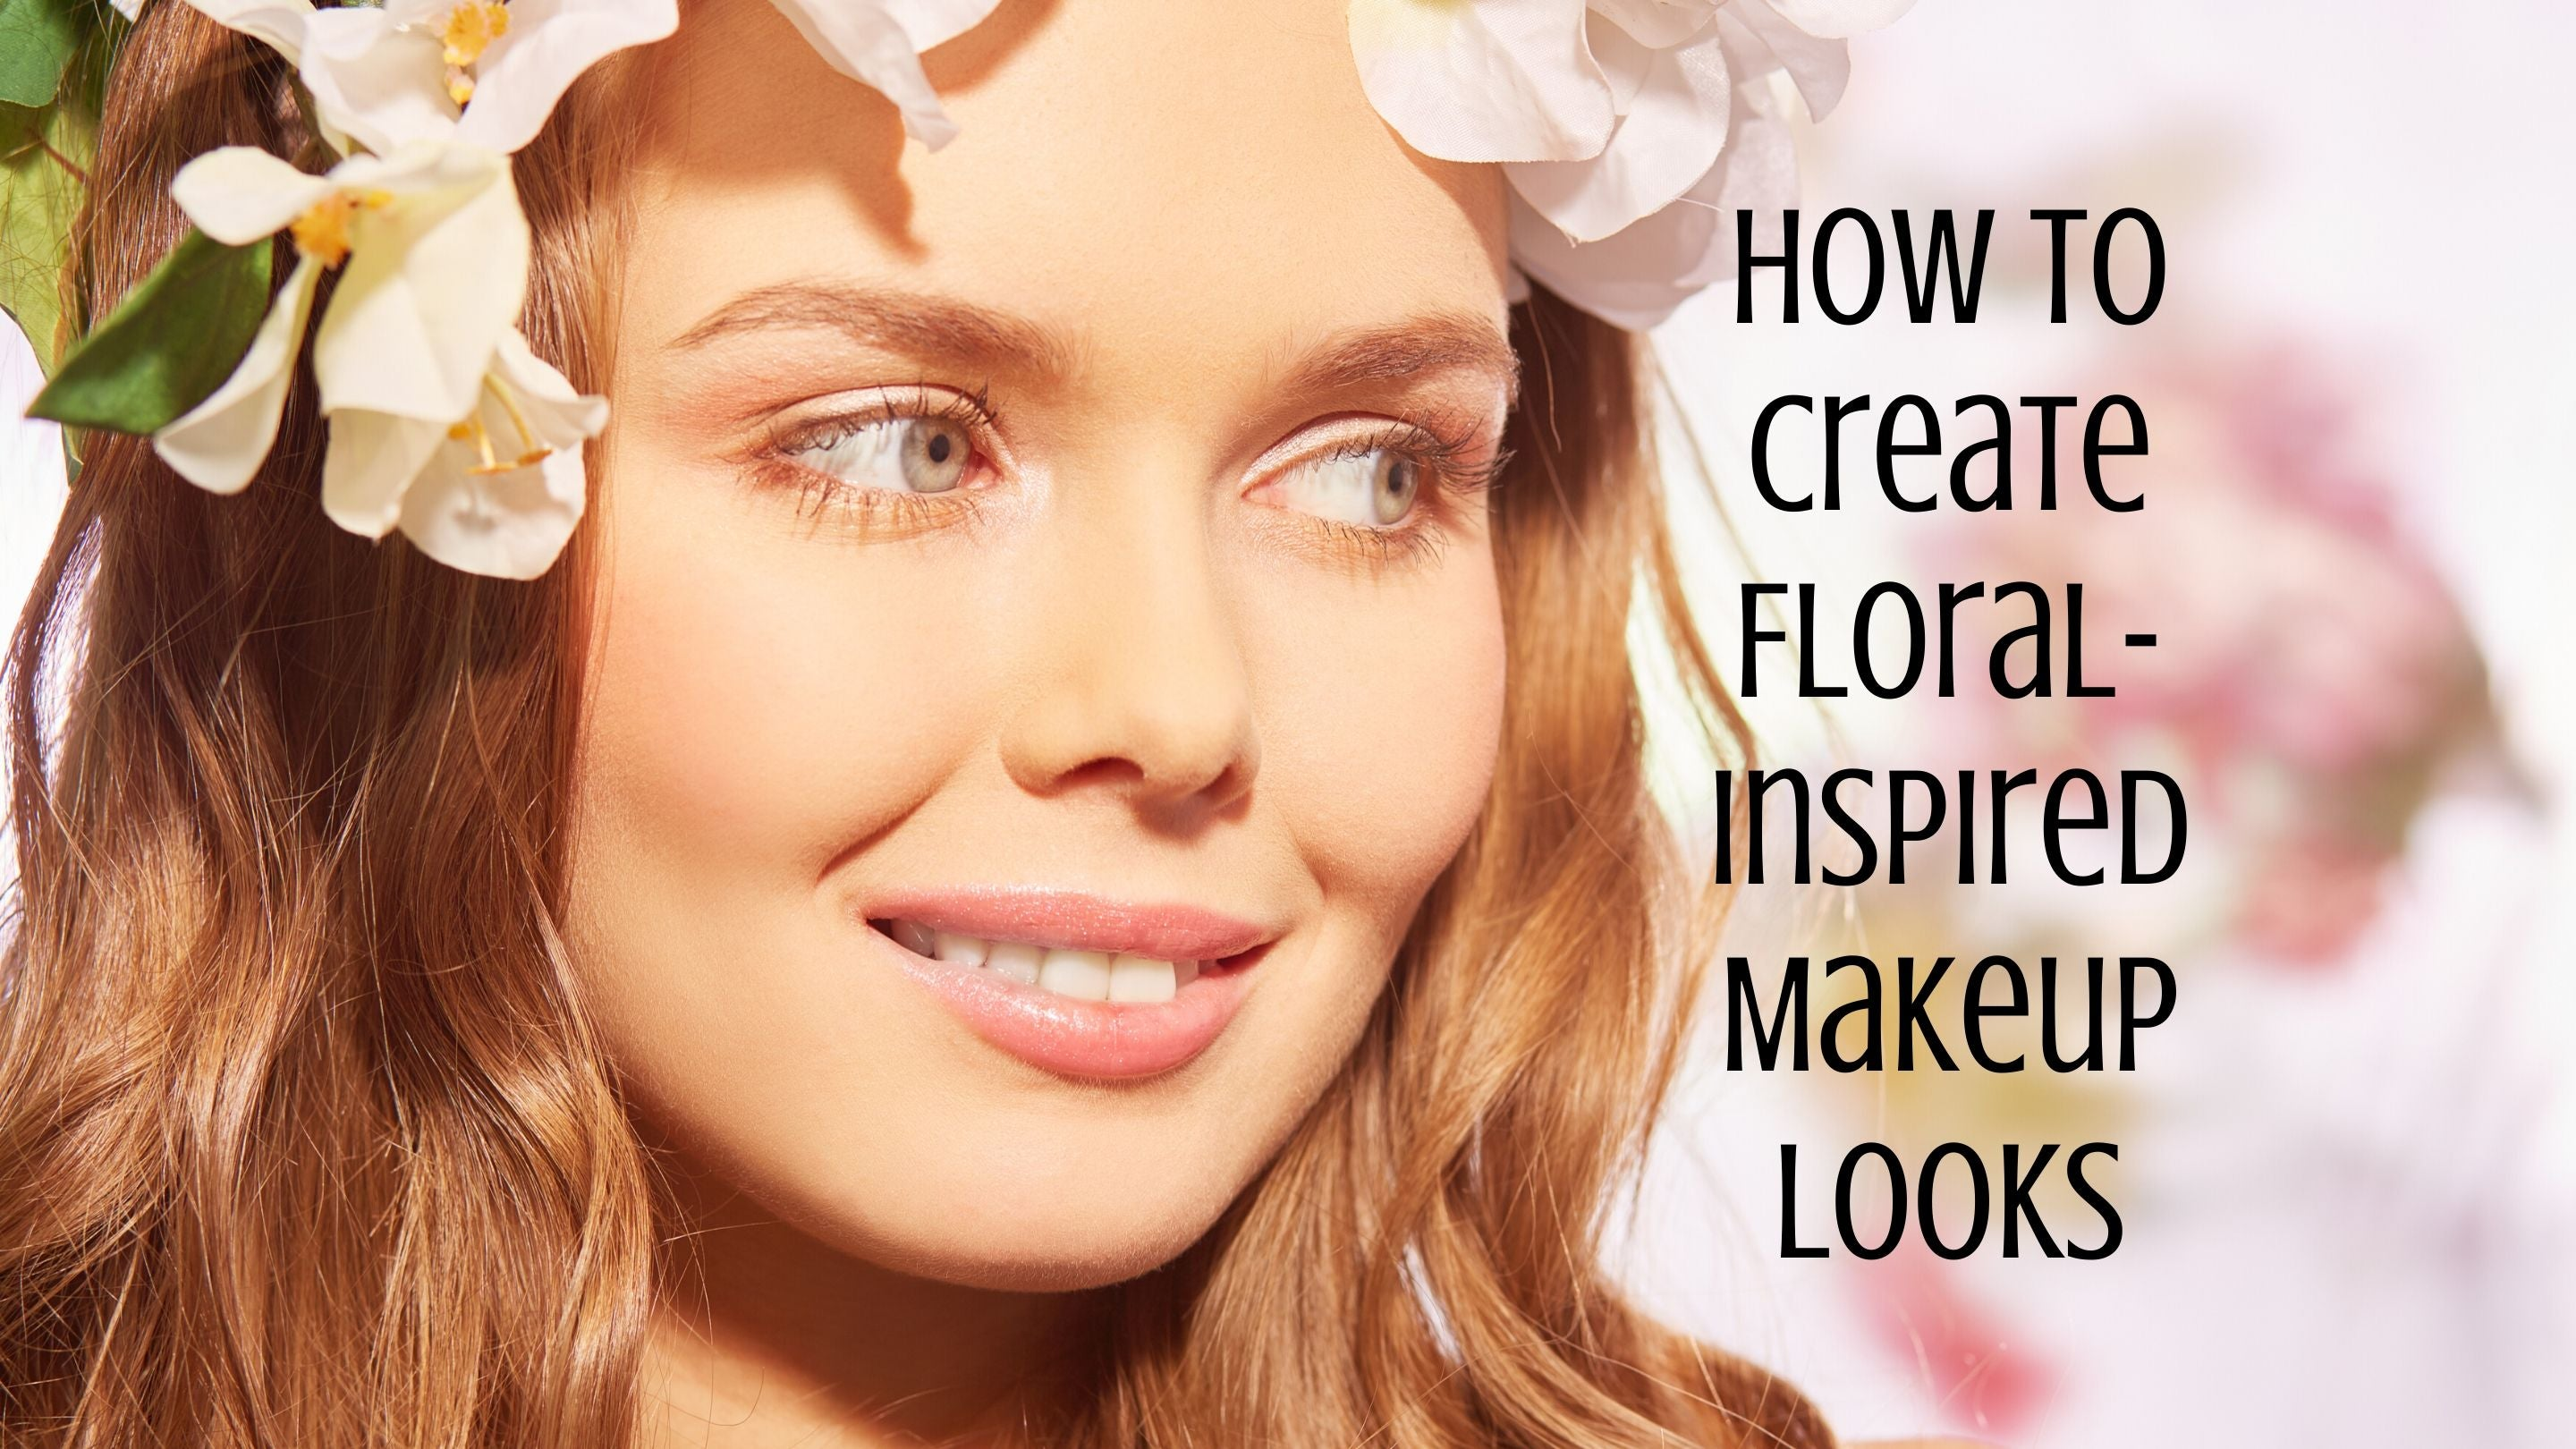 How to Create Floral-Inspired Makeup Looks